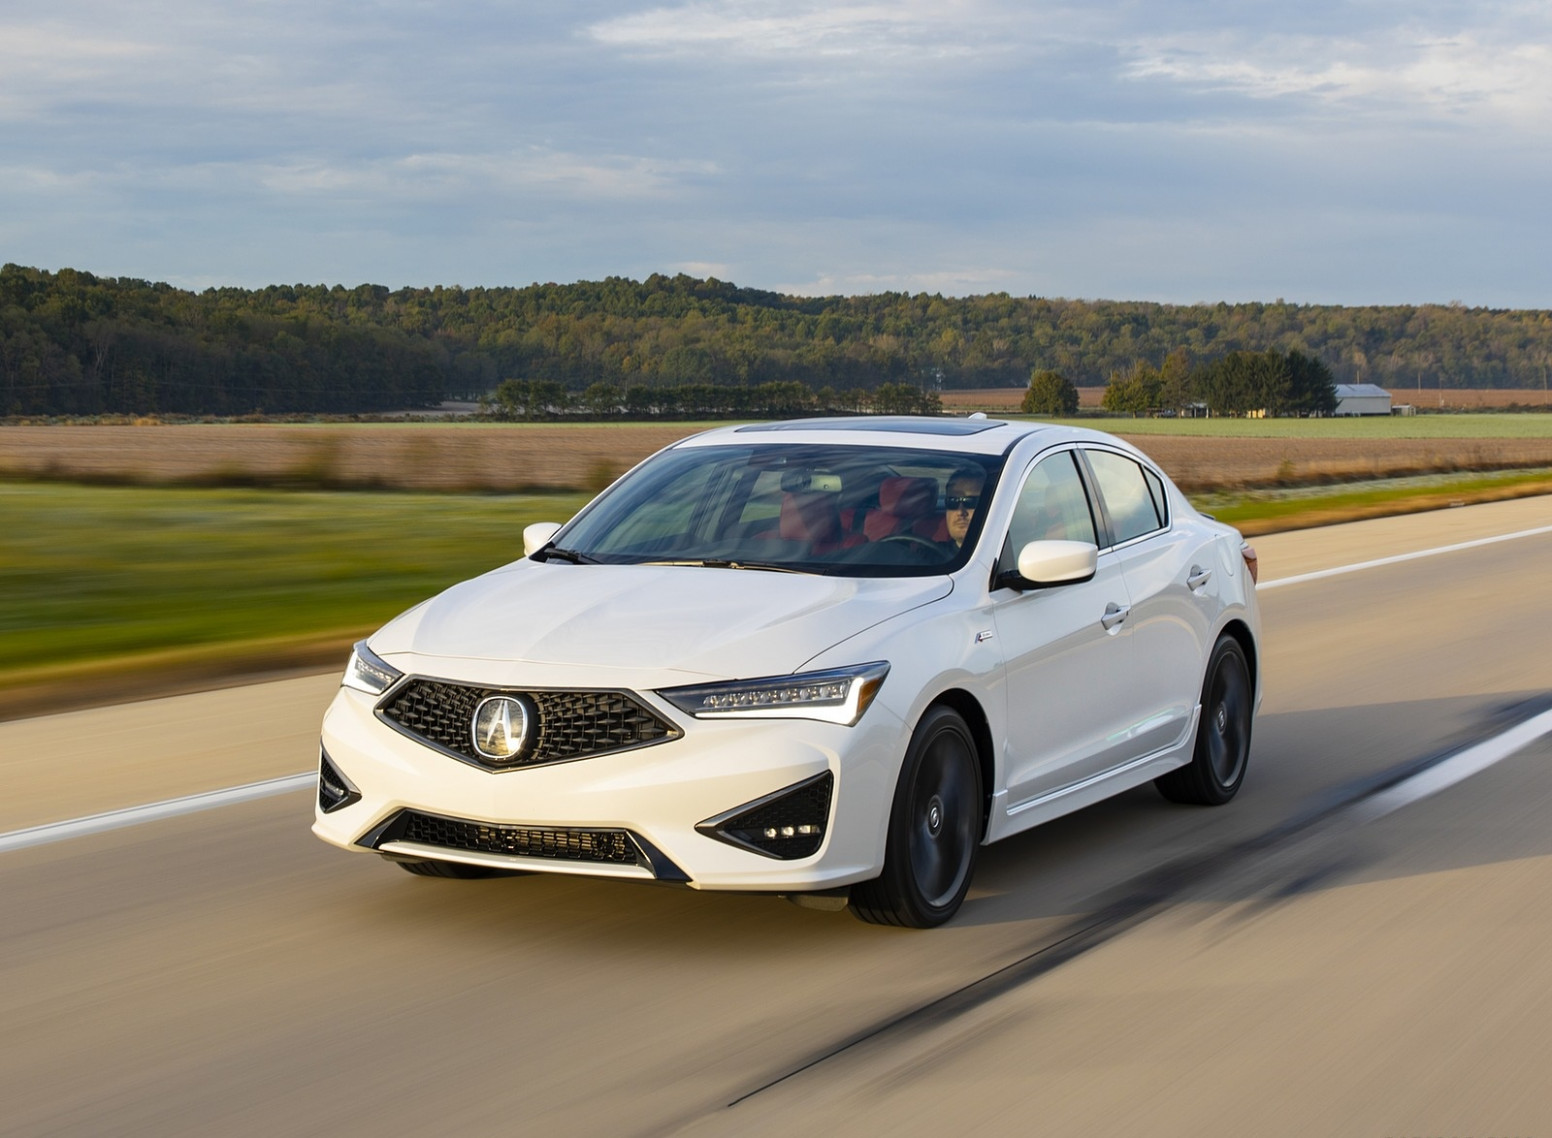 9 Acura ILX A-Spec Wallpapers (9+ HD Images) - NewCarCars - 2020 acura ilx a spec